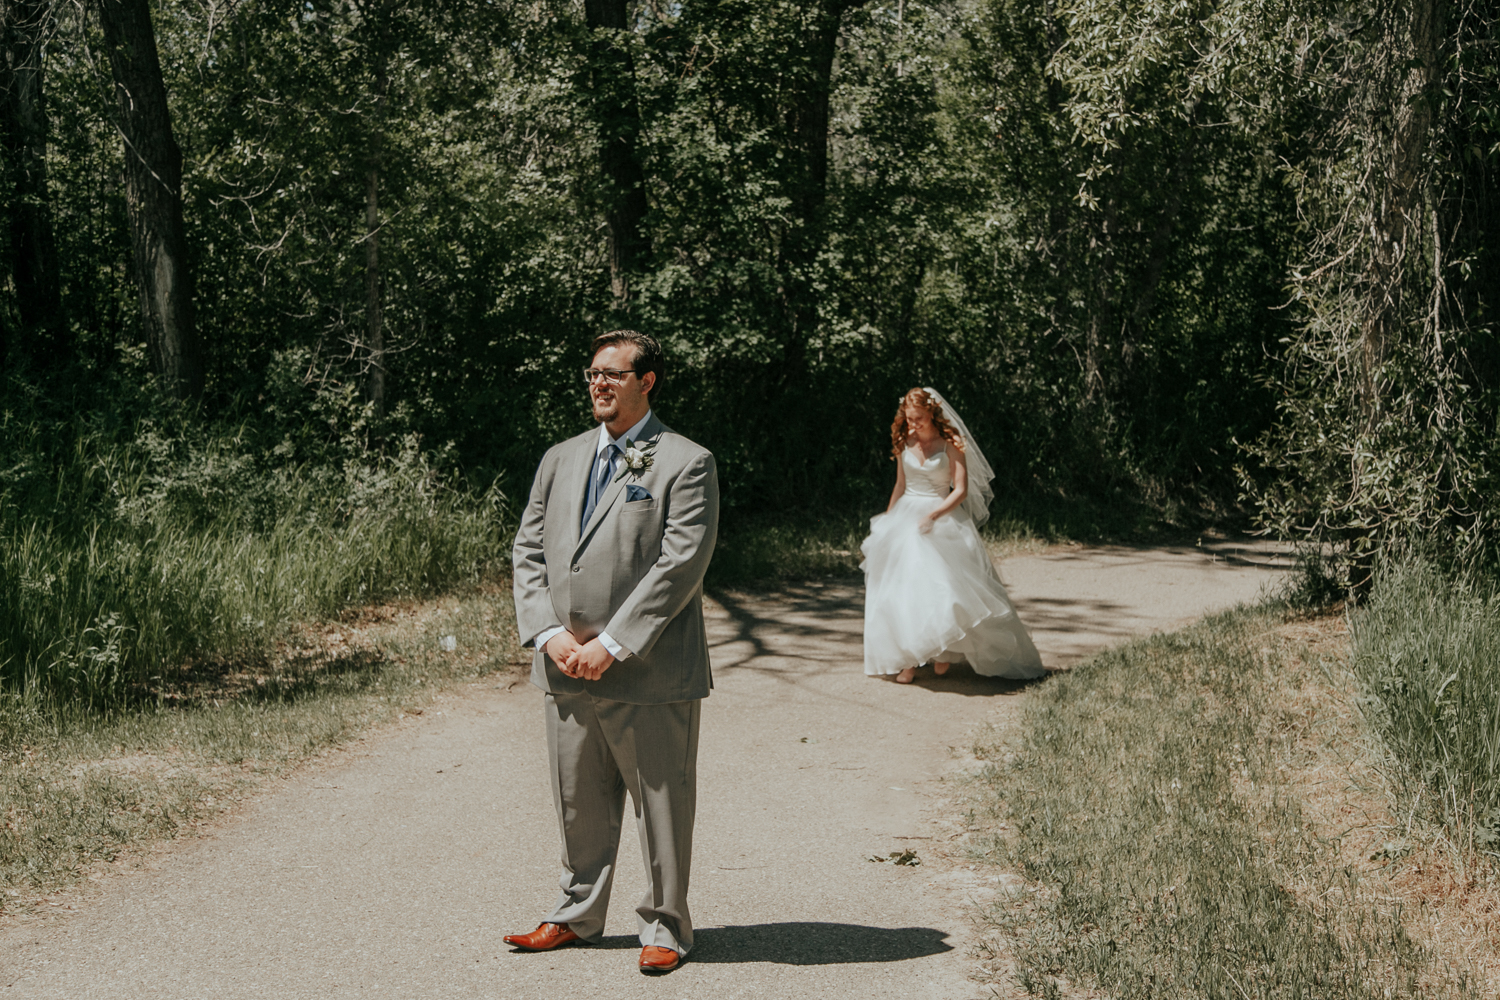 lethbridge-wedding-photographer-love-and-be-loved-photography-dan-tynnea-picture-image-photo-32.jpg